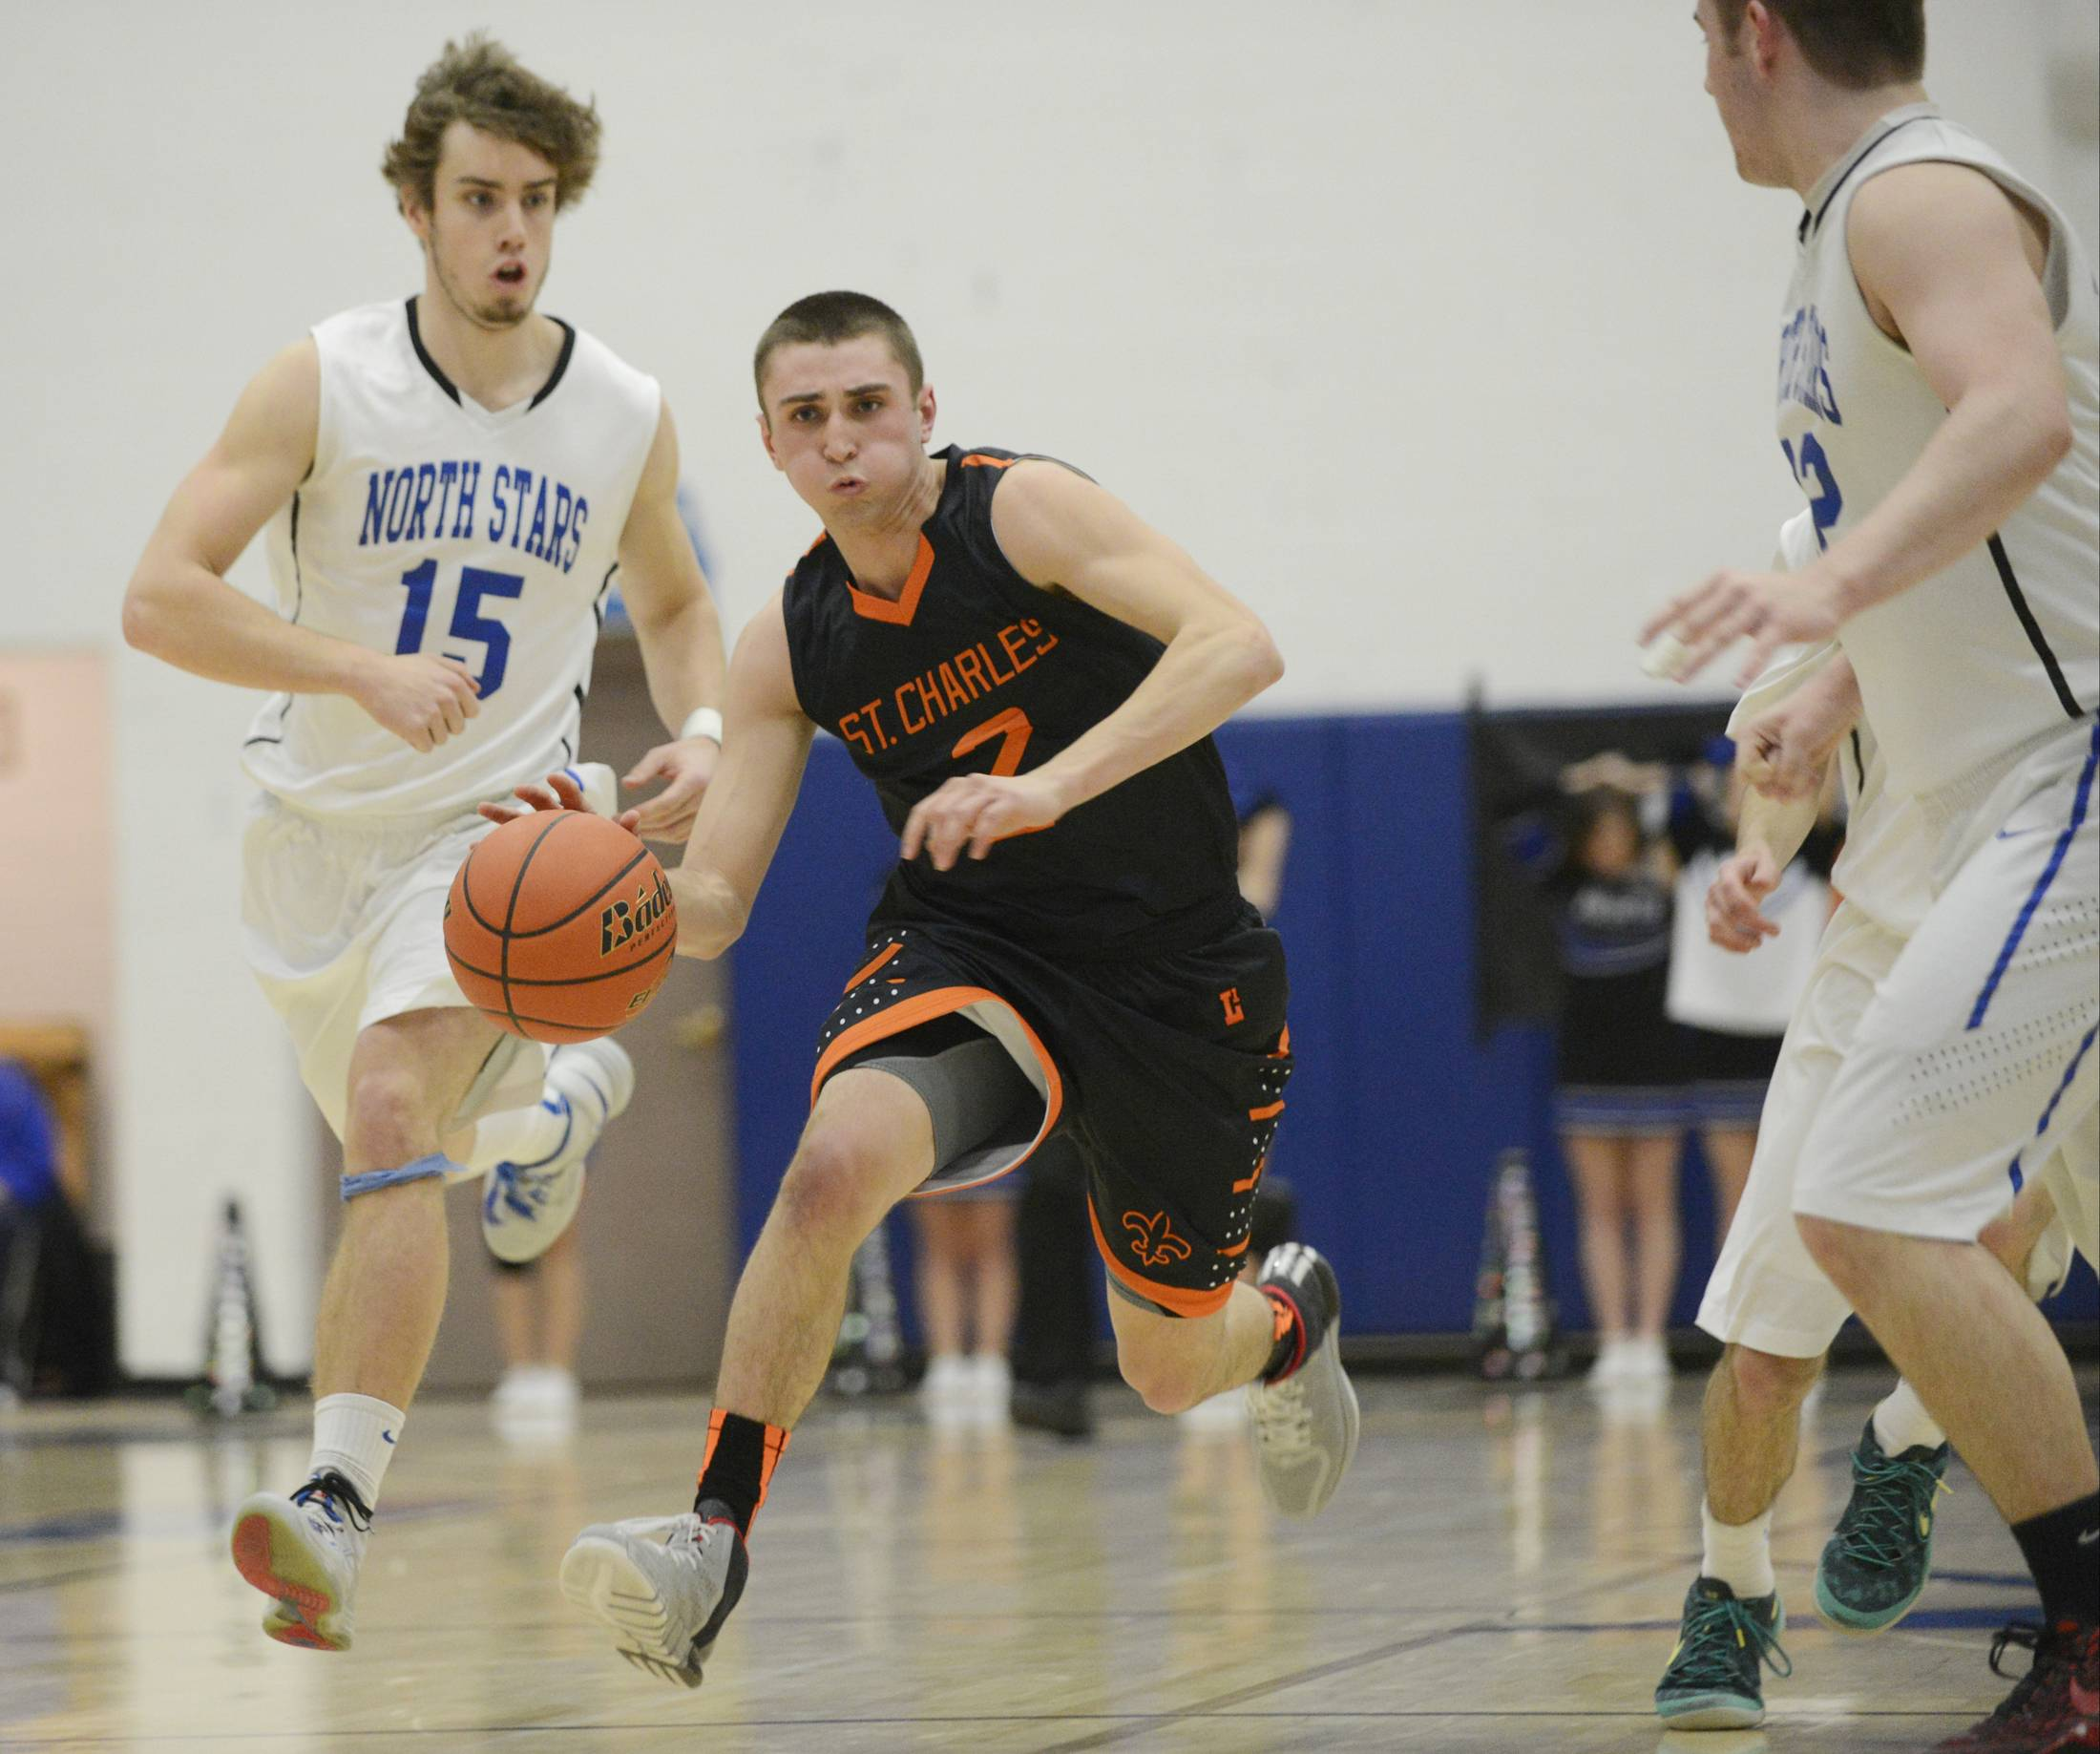 Images: St. Charles East vs. St. Charles North boys basketball